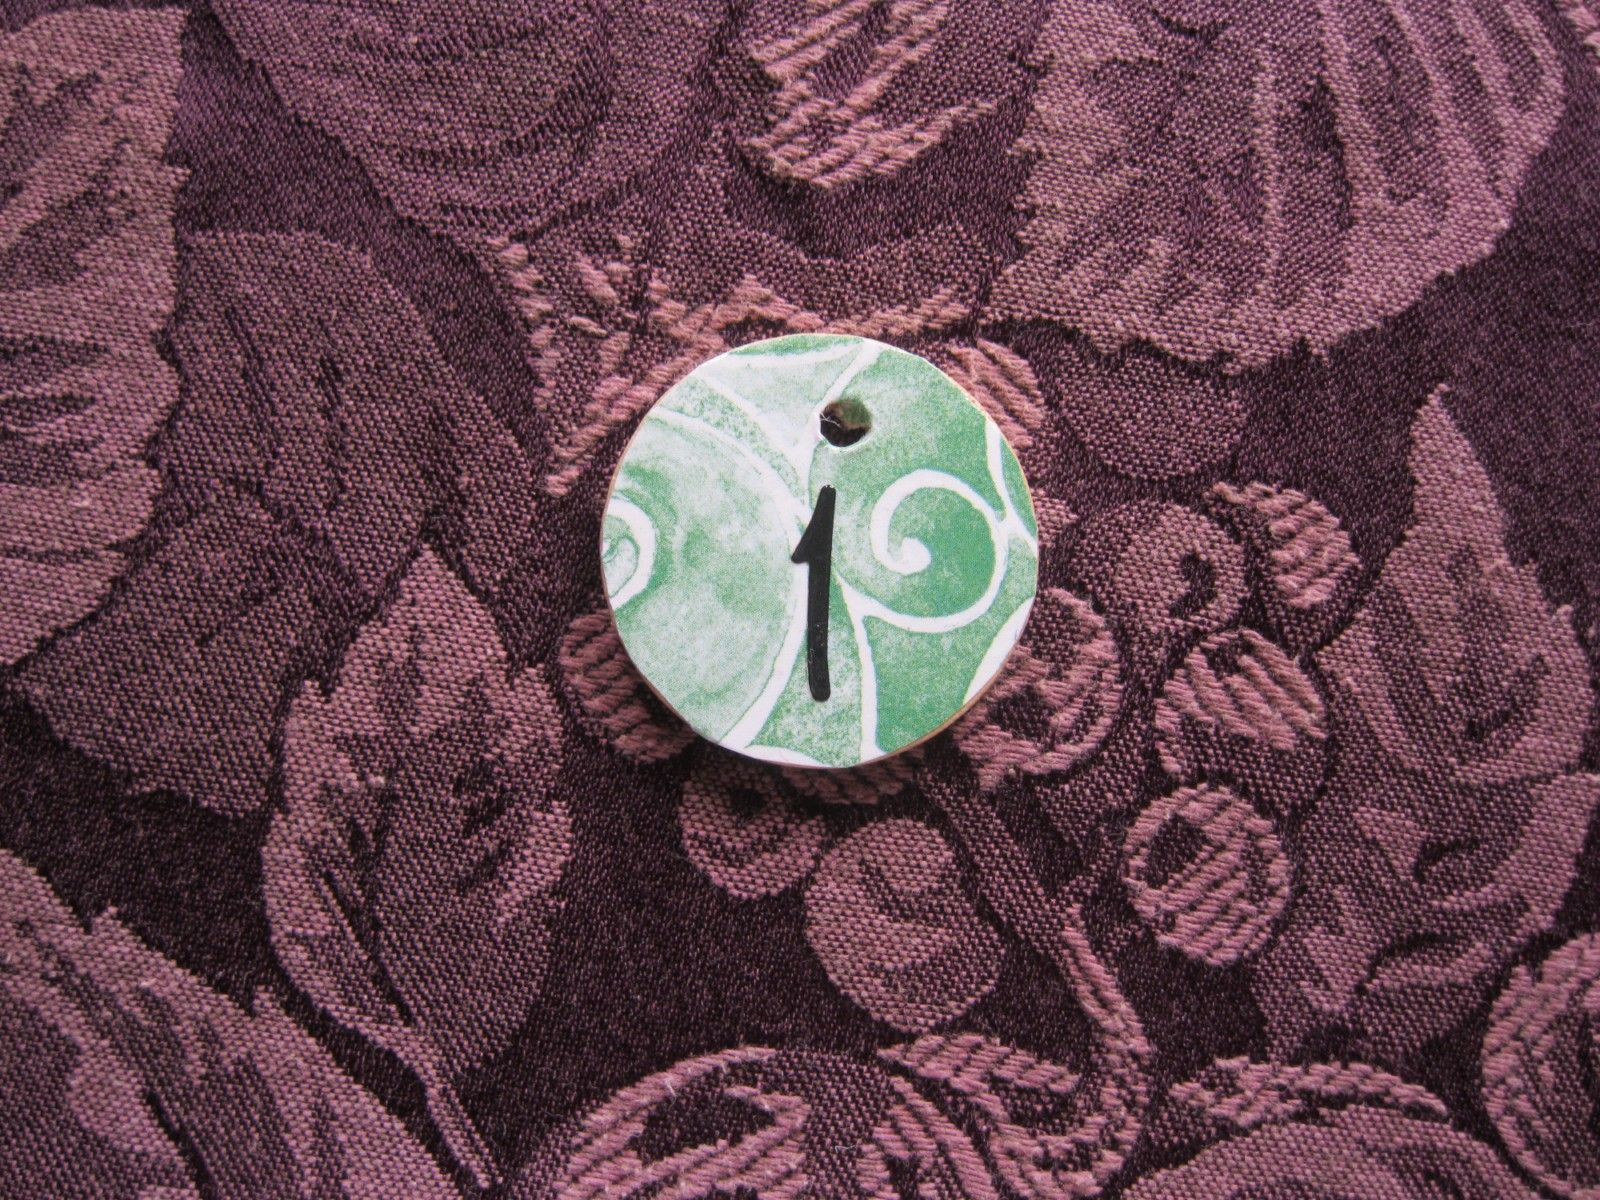 Cover a wood craft disc w/ mod podge. Cut out a circle from craft paper, apply, add a thick coat of glossy cover when it's dried. District necklaces.